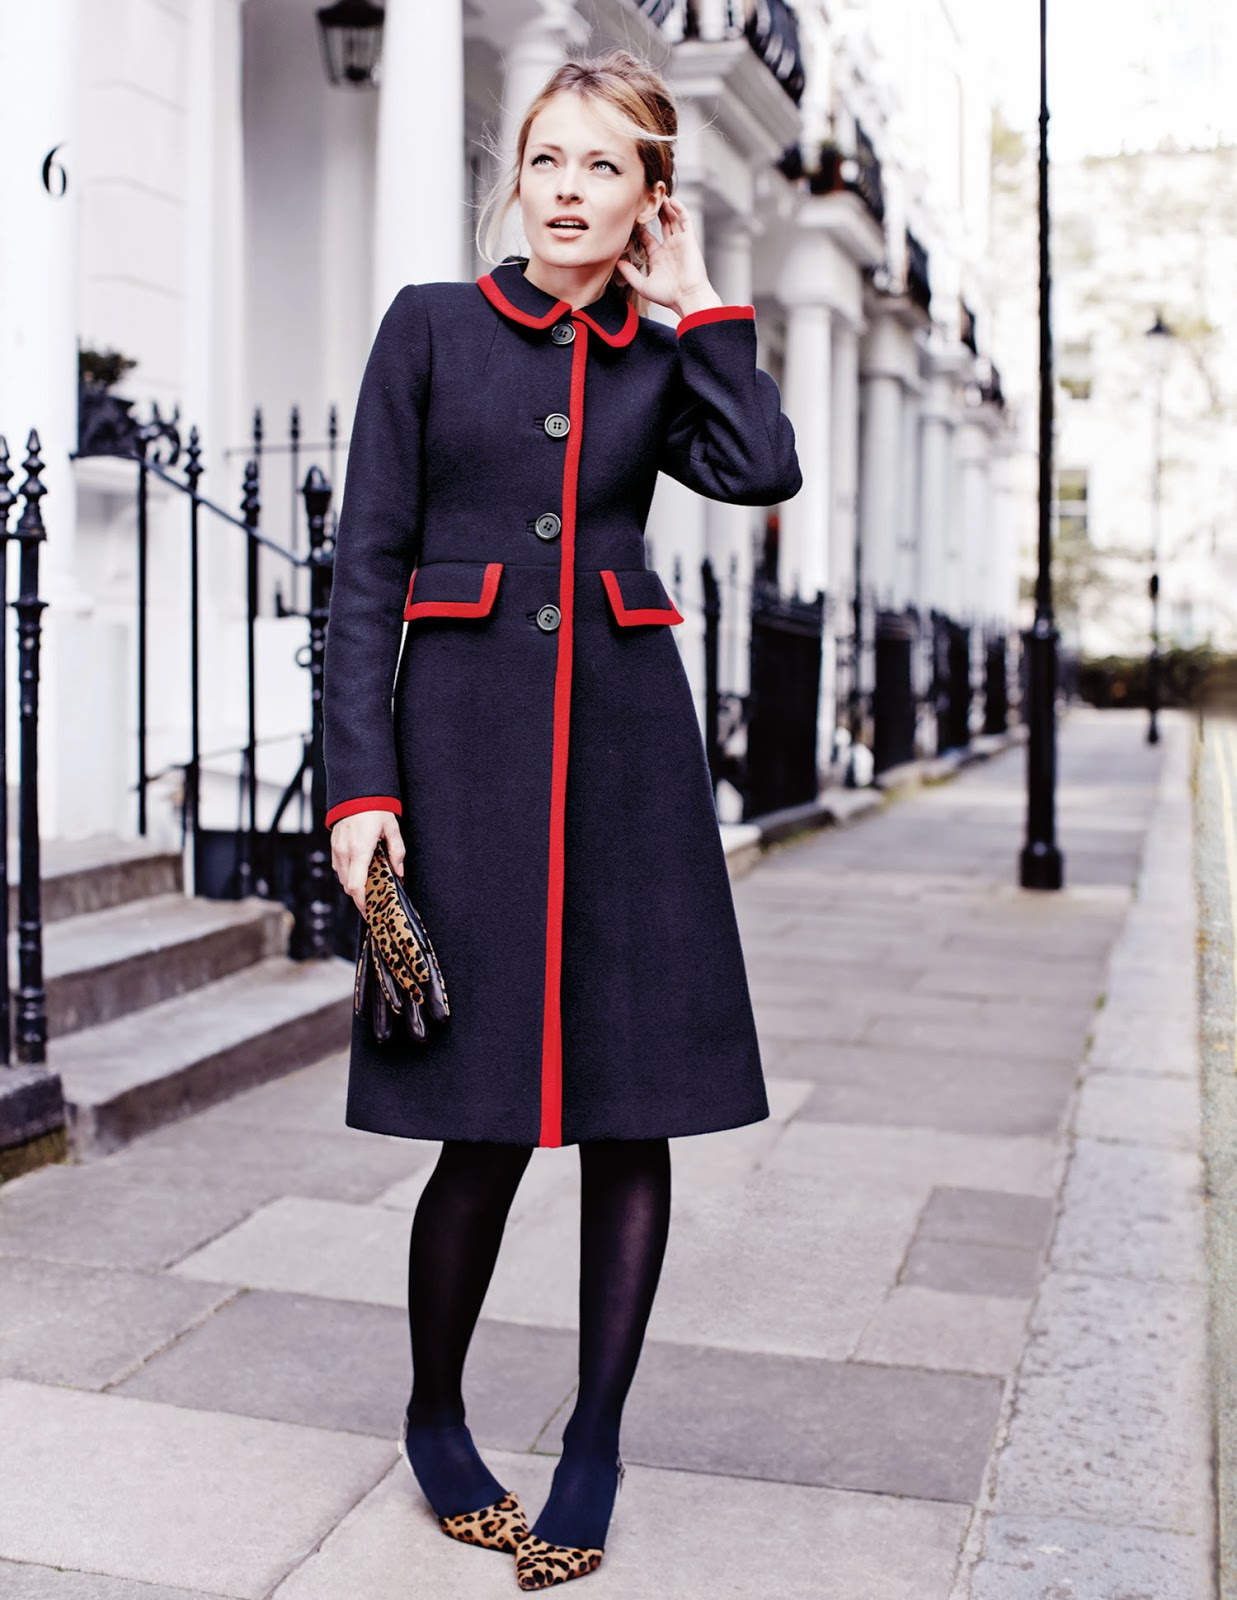 http://www.boden.co.uk/en-GB/Womens-Coats-Jackets.html